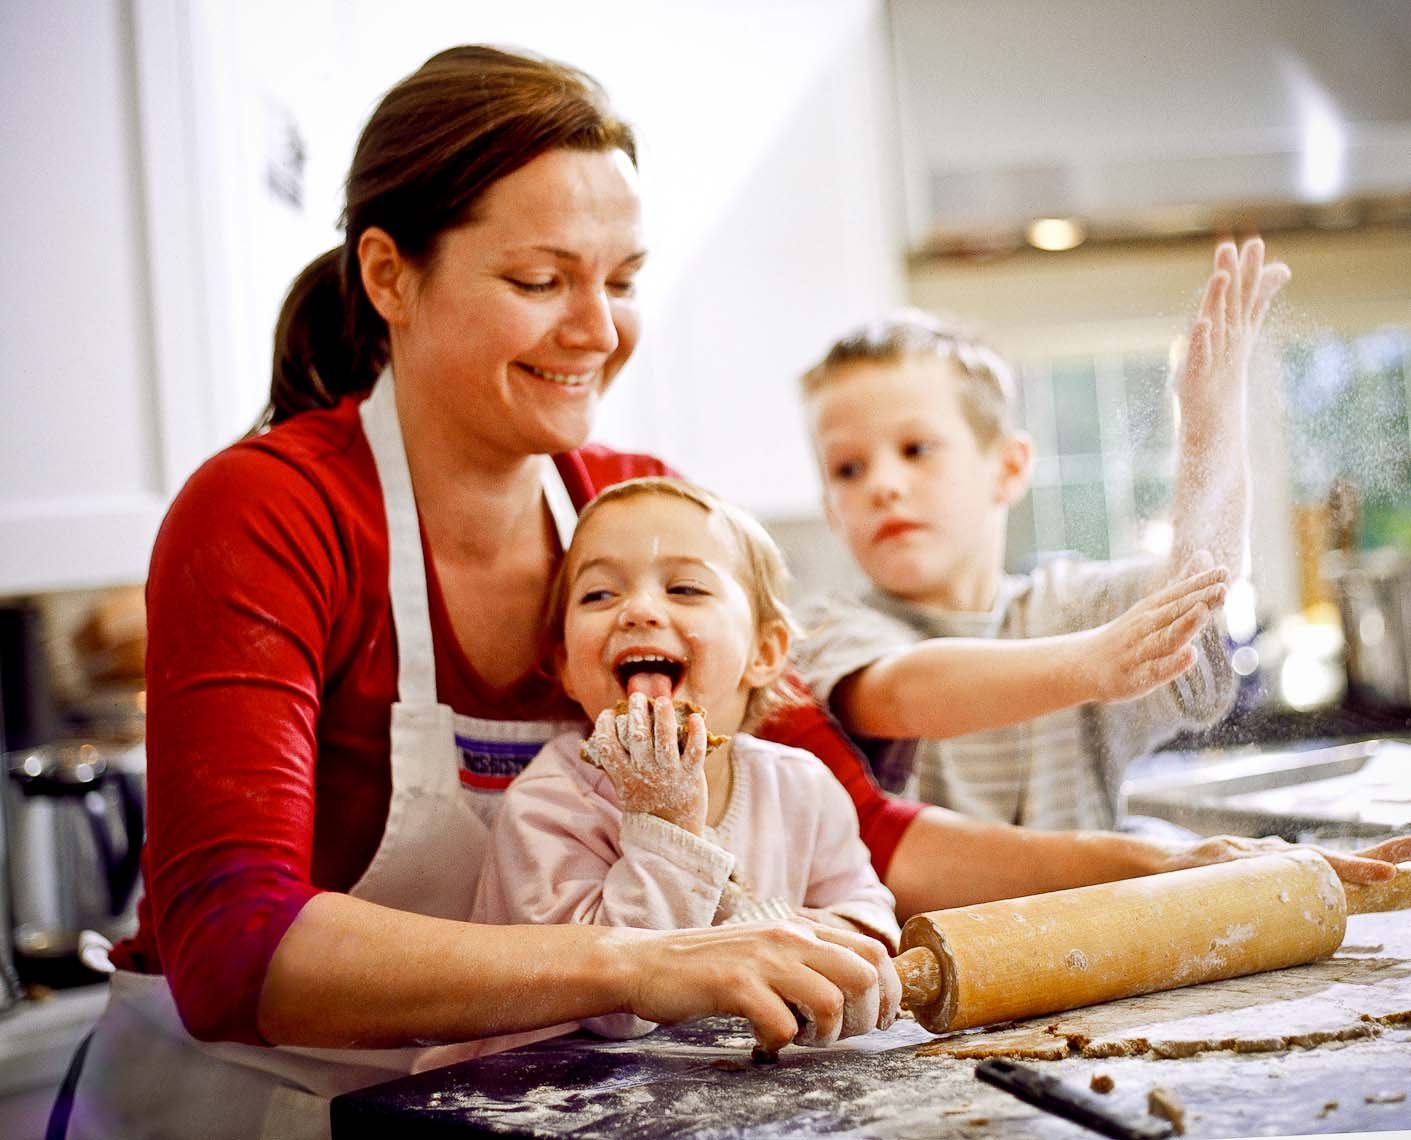 Mom-kids_kitchen2.jpg